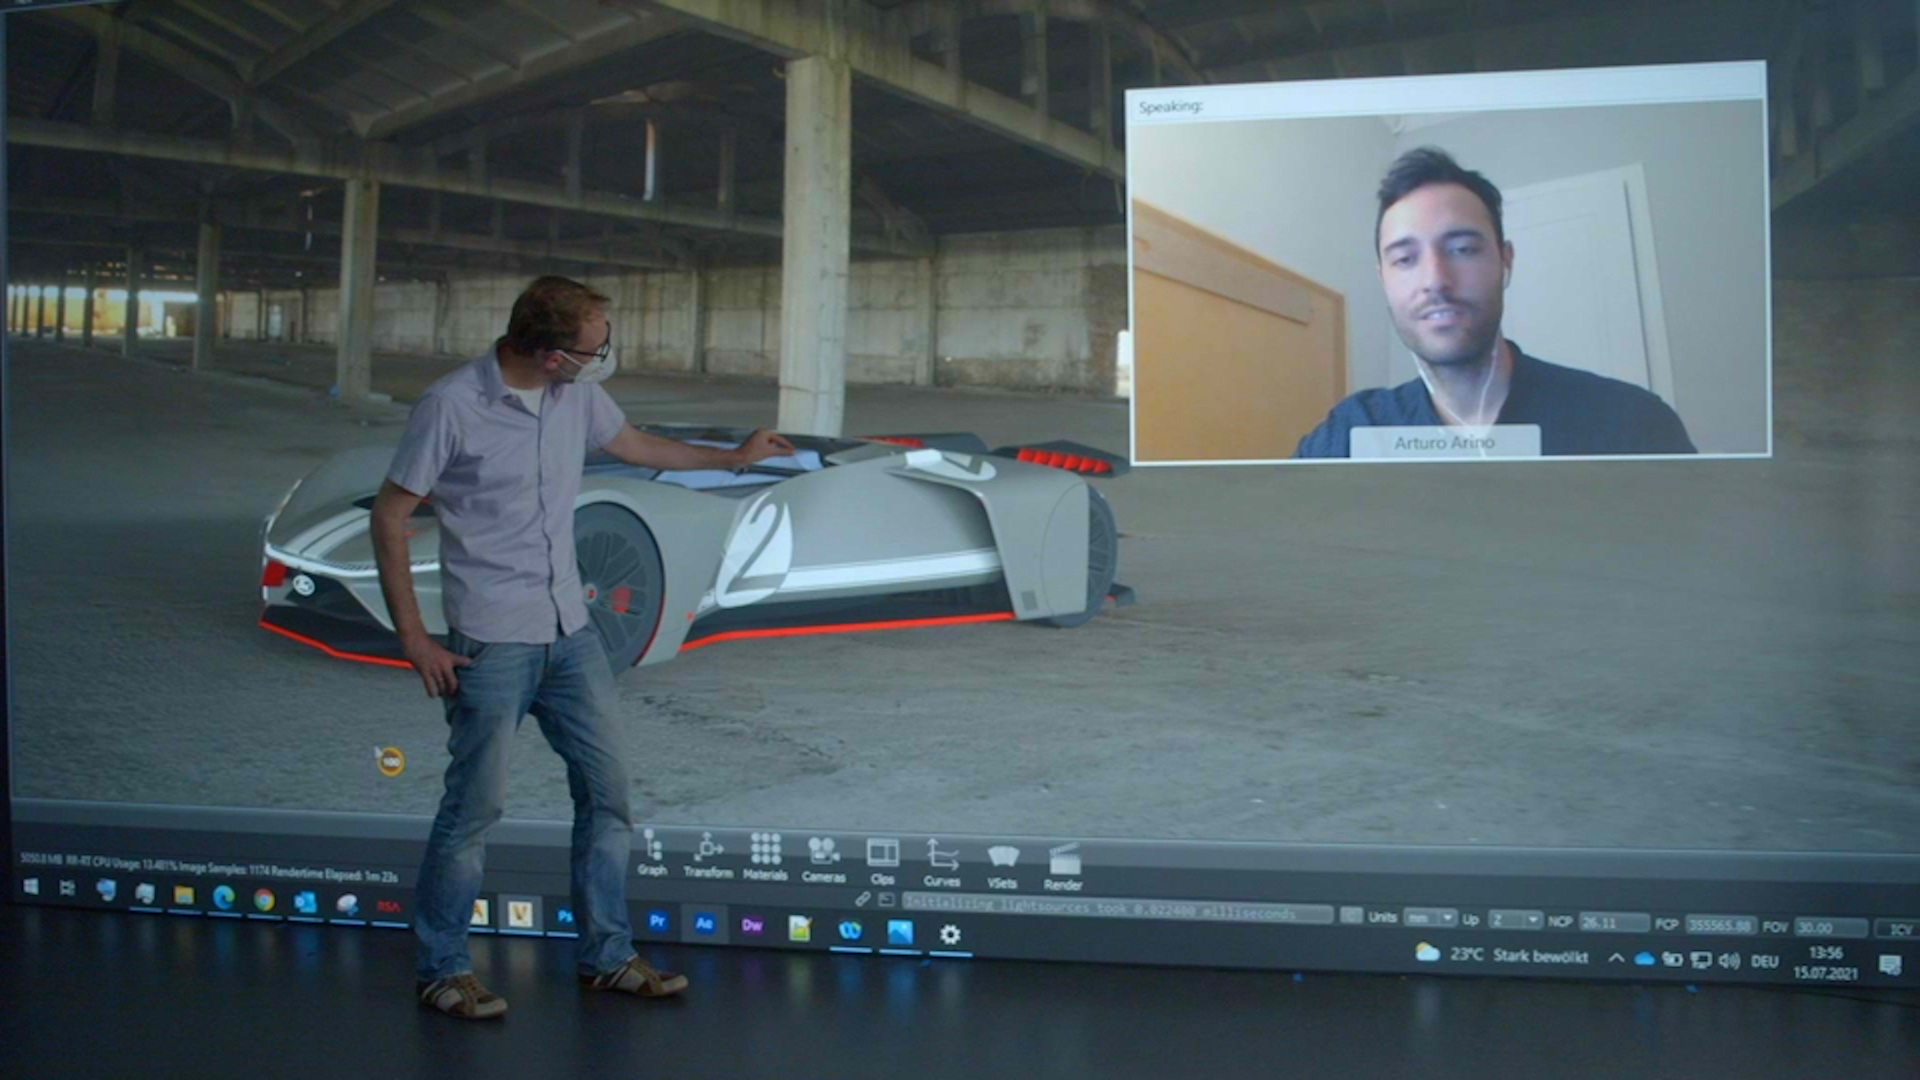 Engineers build simulations that enable them to trial how useful customers find new technologies, while designers use animations to create virtual prototypes. Ford even designed a vehicle in collaboration with the gaming community